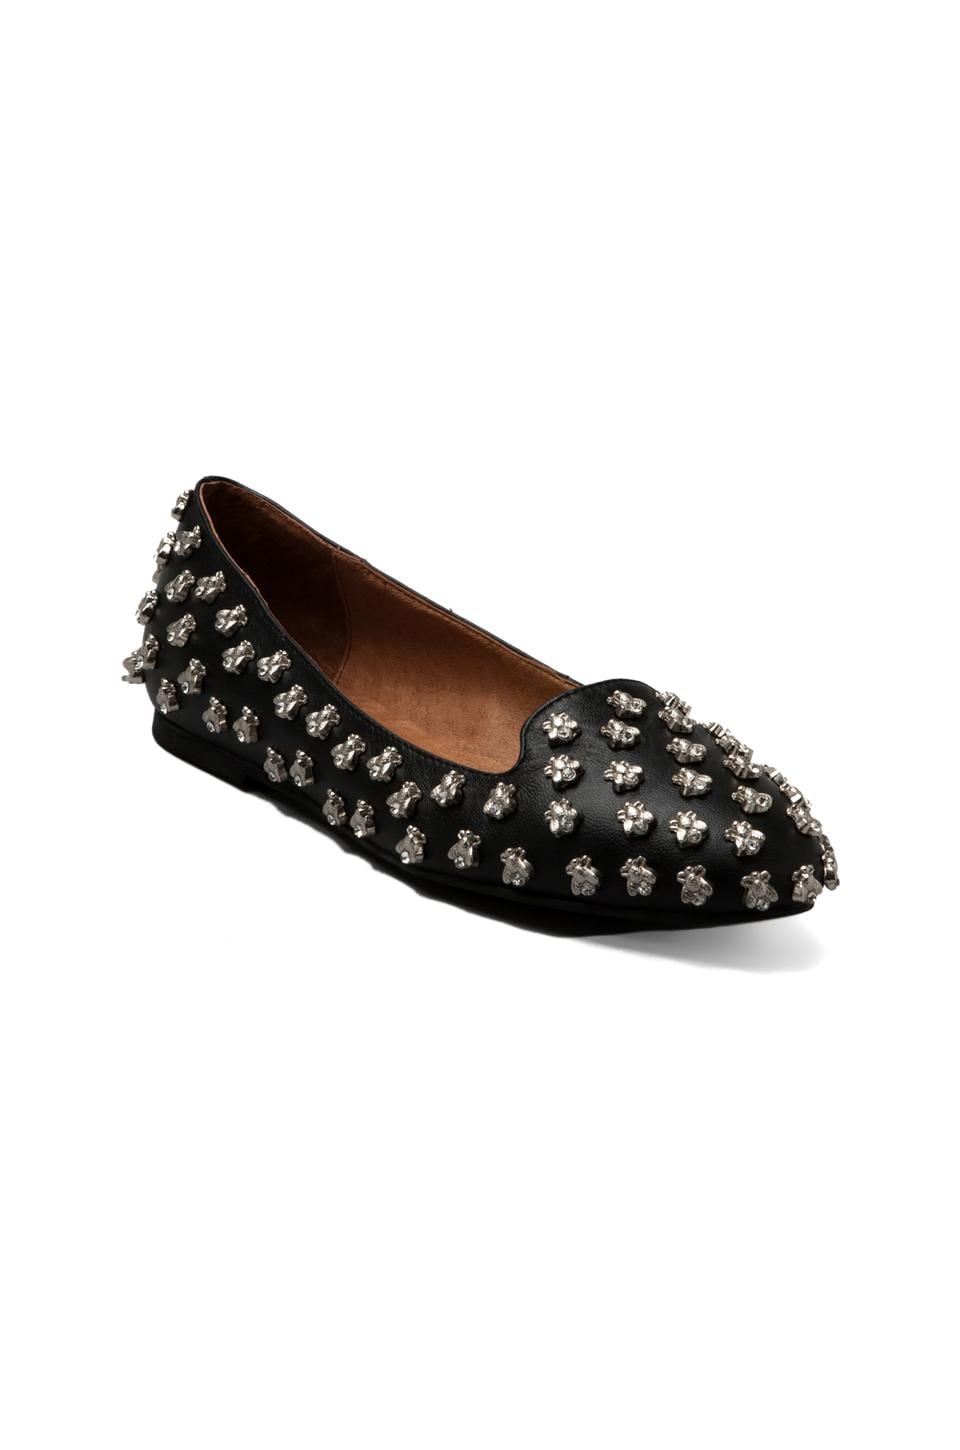 Jeffrey Campbell Martinbee in Black Silver